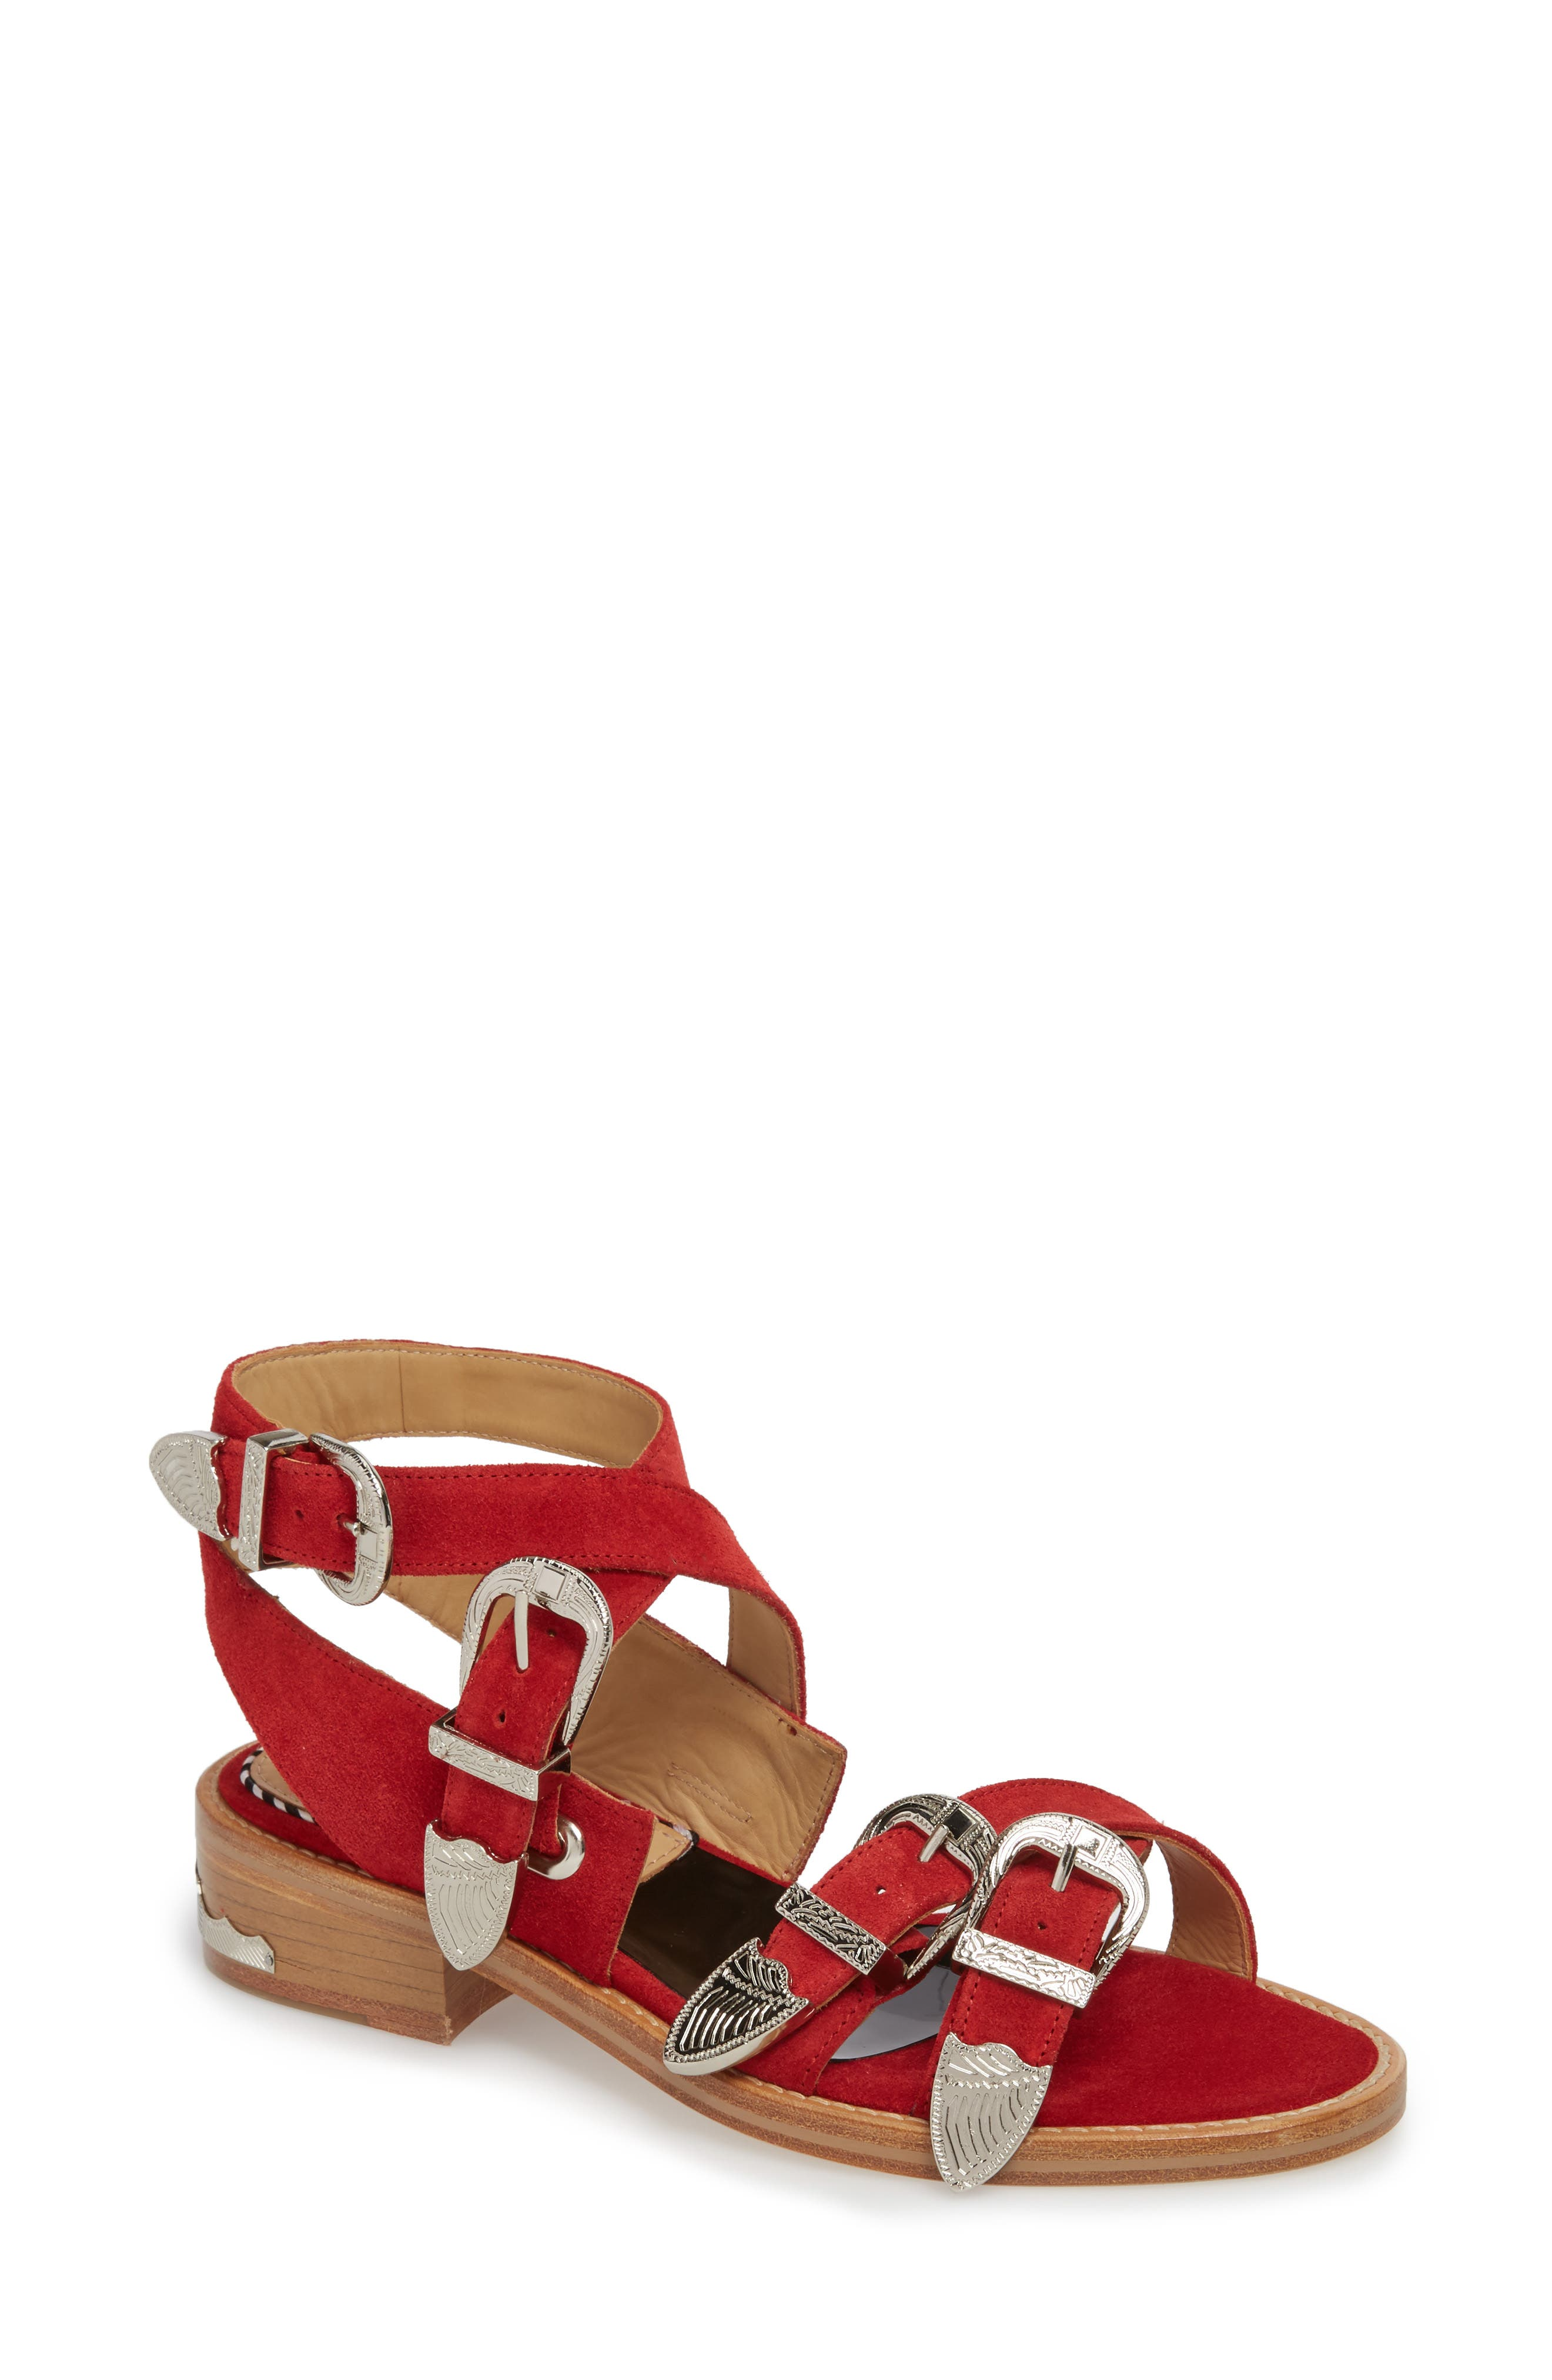 Western Suede Strappy Sandal,                             Main thumbnail 1, color,                             Red Suede